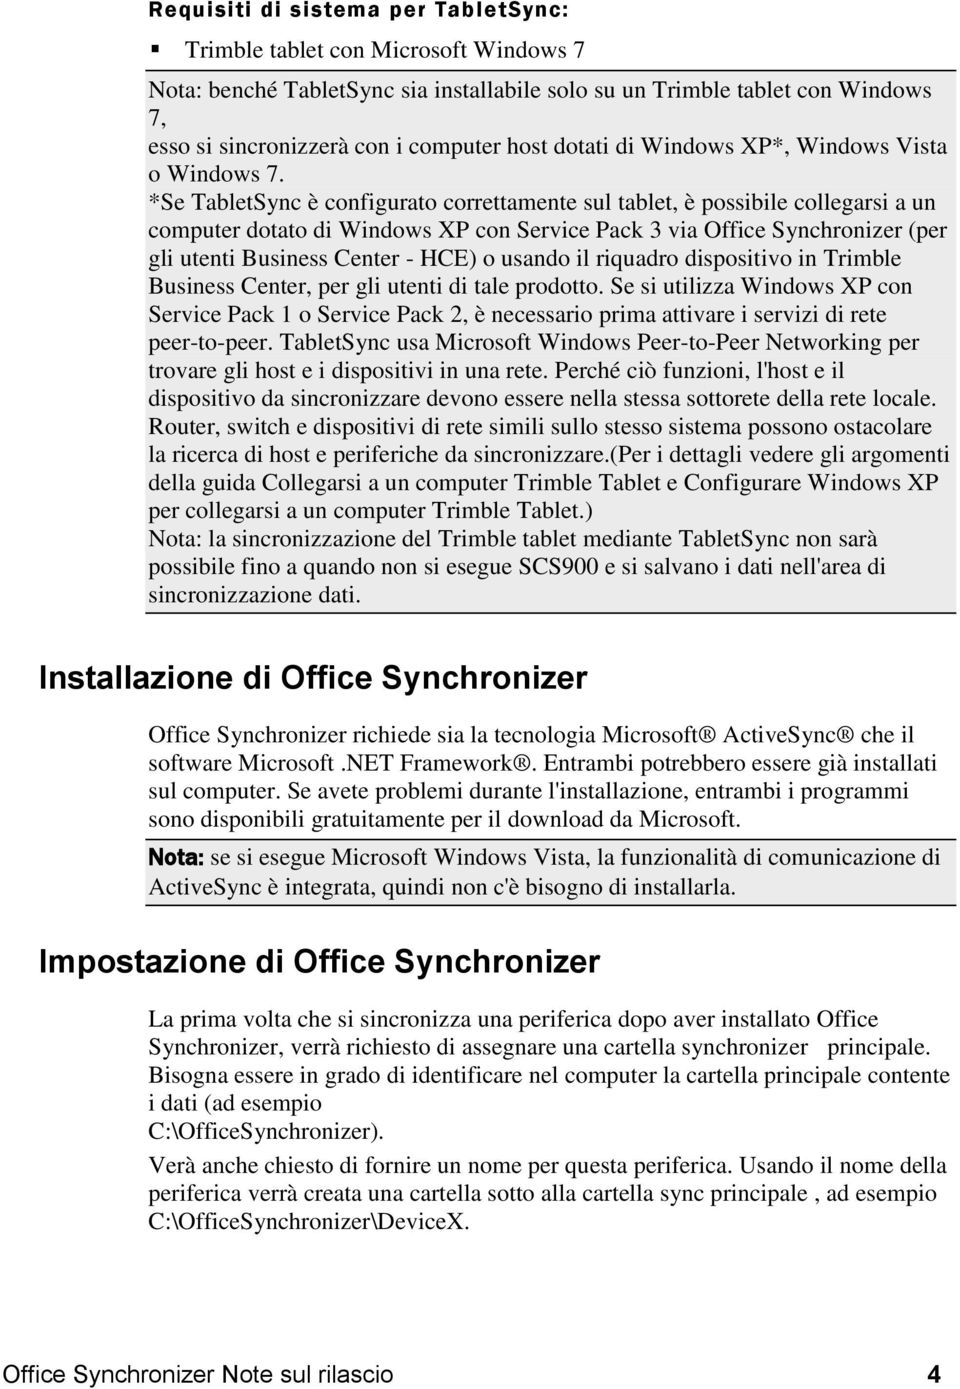 *Se TabletSync è configurato correttamente sul tablet, è possibile collegarsi a un computer dotato di Windows XP con Service Pack 3 via Office Synchronizer (per gli utenti Business Center - HCE) o